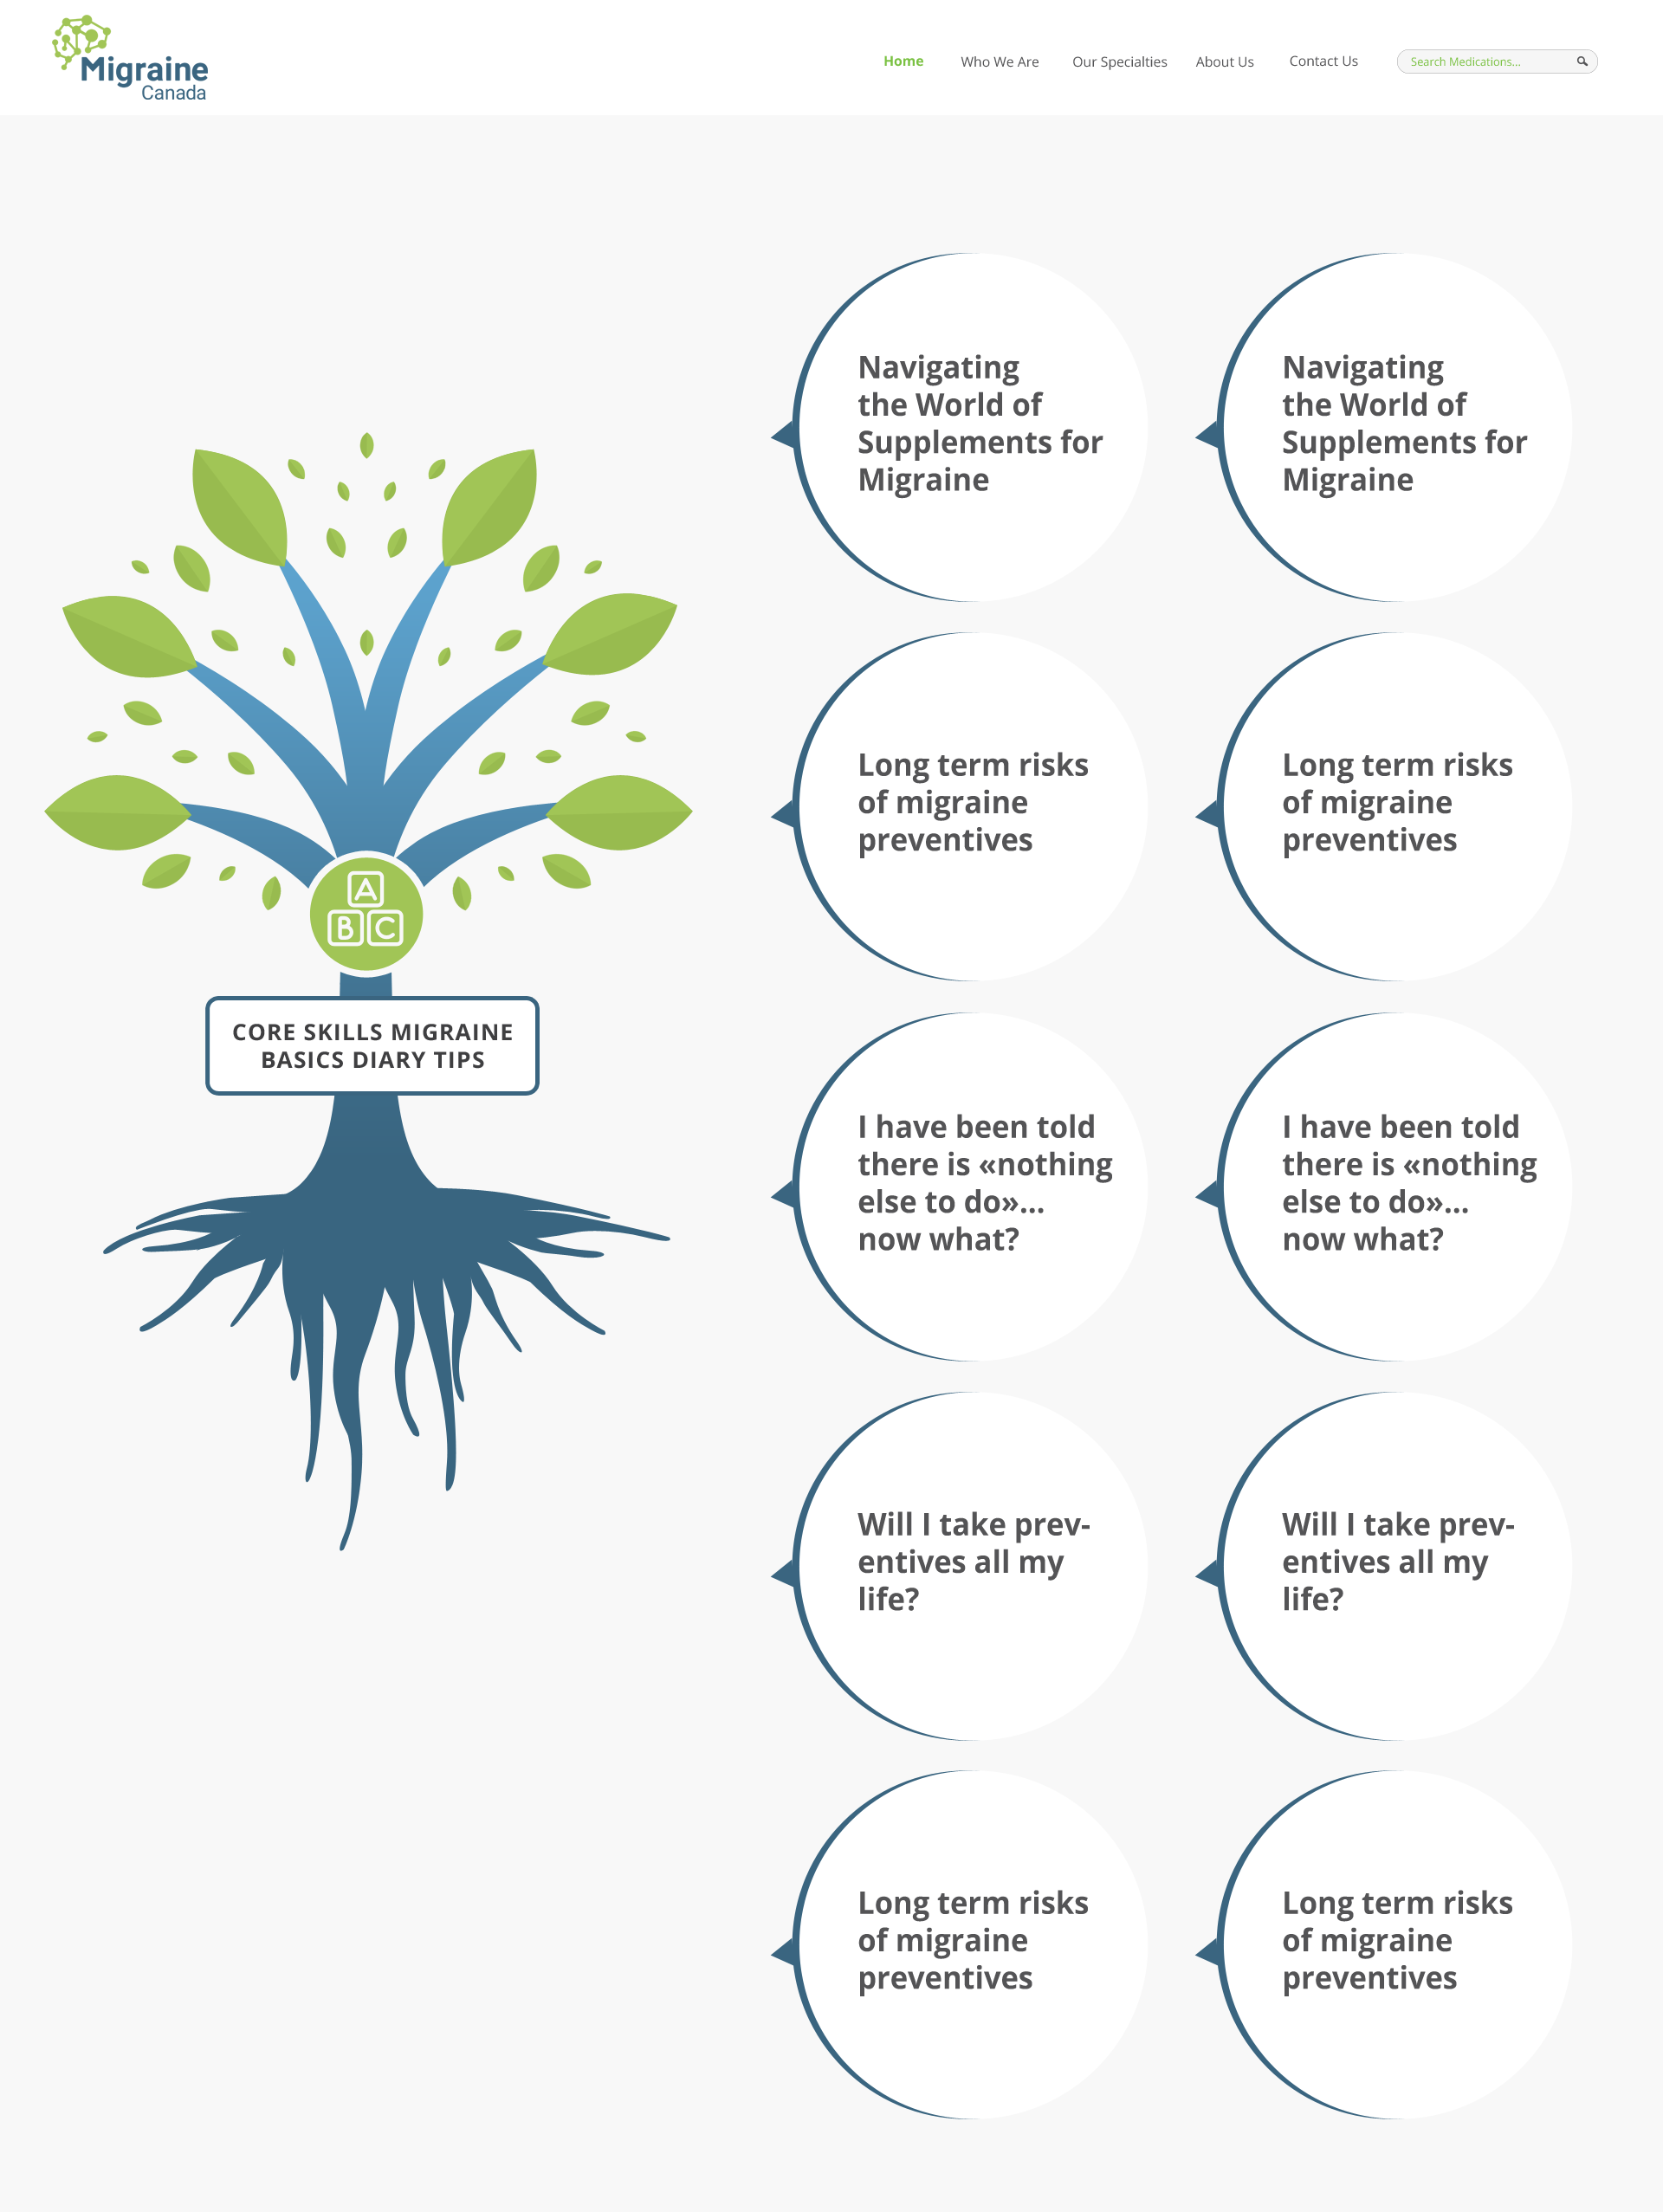 Additionnal Graphic design elements based on the Migraine Tree